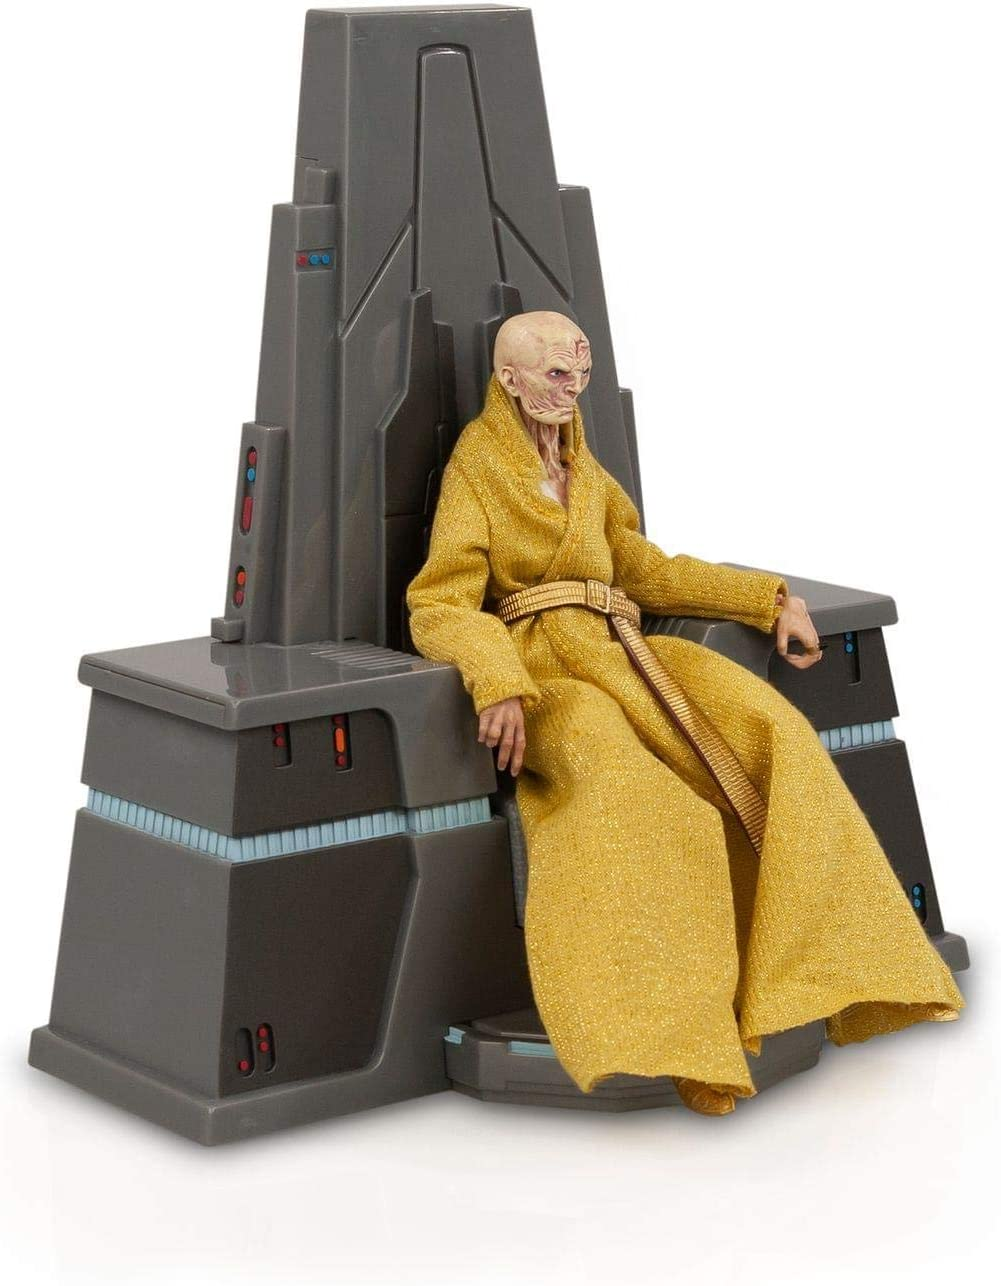 Star Wars Supreme Leader Snoke Figure From The Black Series | Fully Poseable 6-Inch Action Figure Comes With Exquisite Features | Highly Detailed